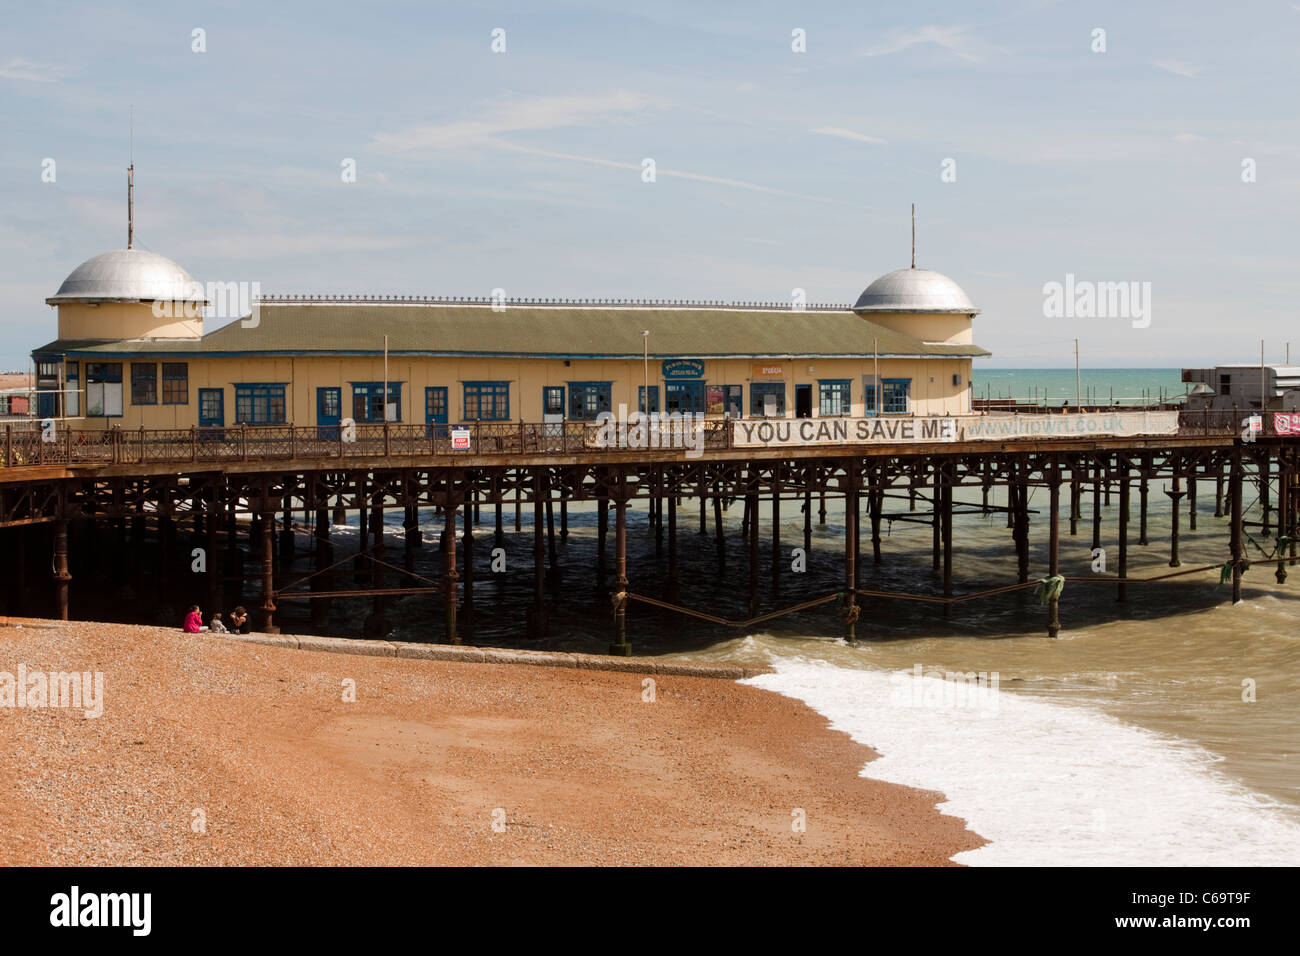 Hasting pier and beach/seafront, East Sussex, England, UK.  The pier is now derelict after arson in 2010 - Stock Image